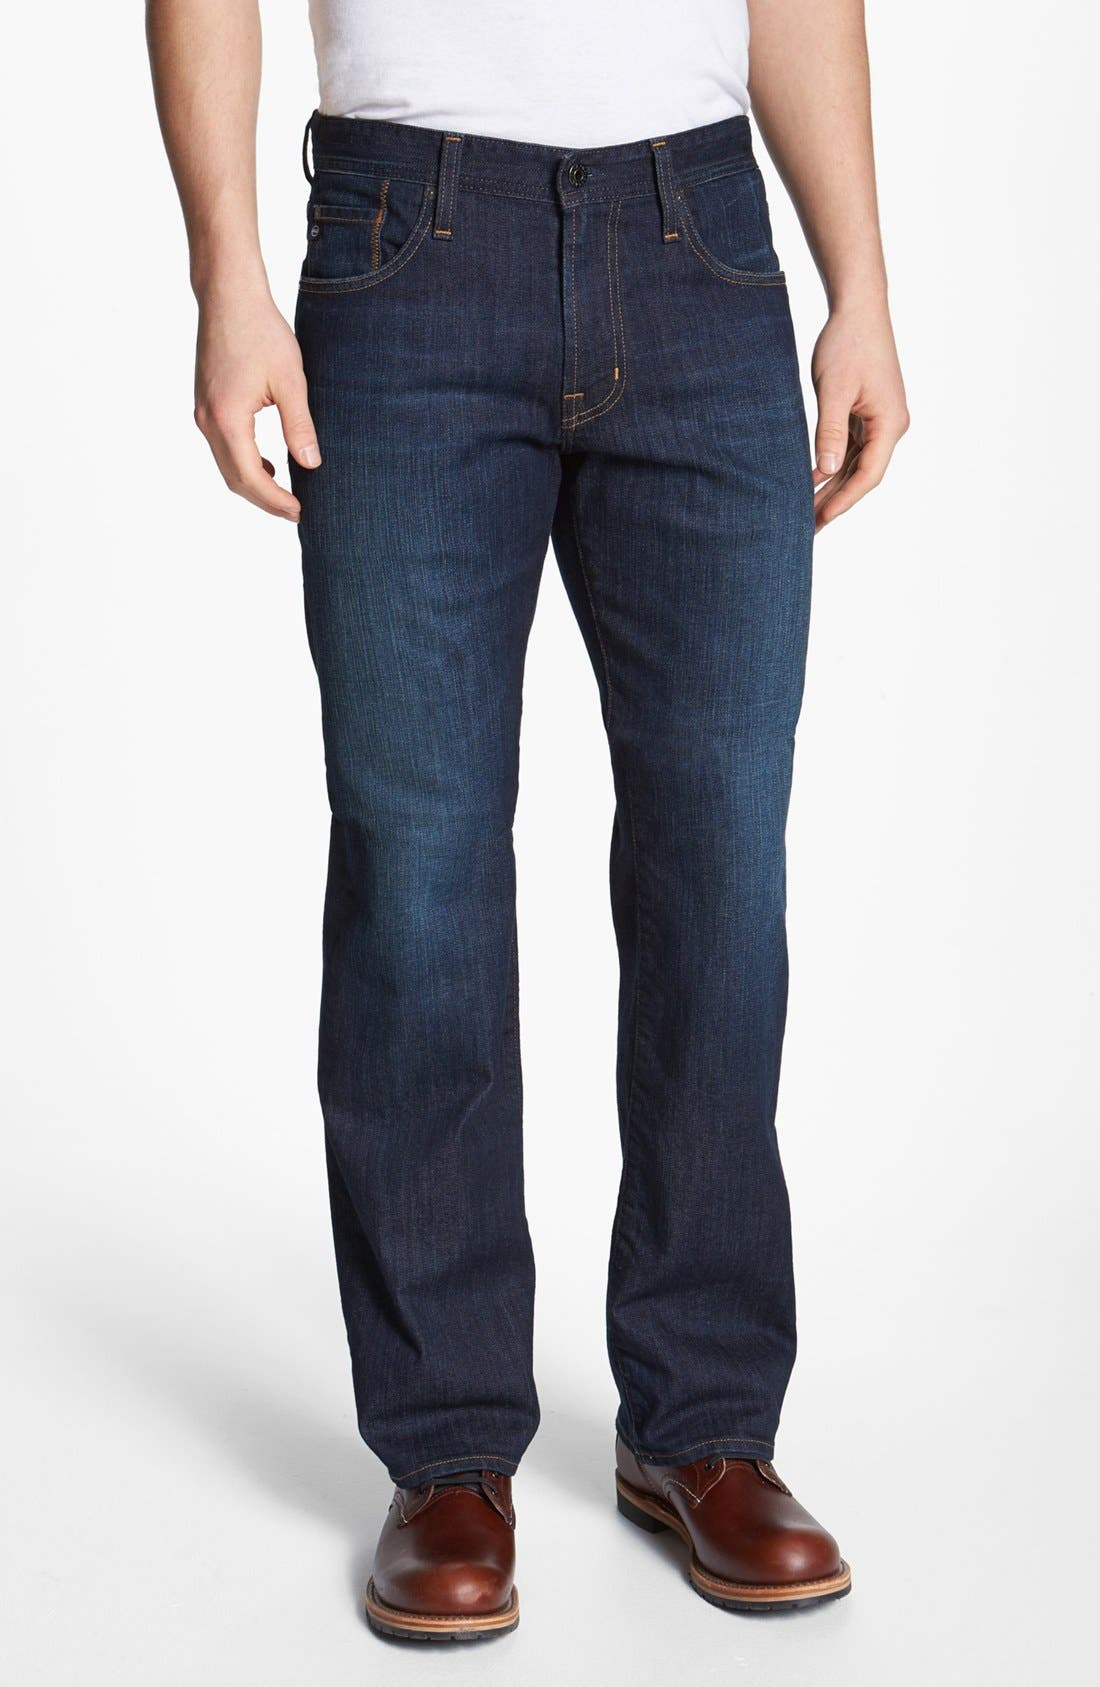 Alternate Image 1 Selected - AG Jeans 'Hero' Relaxed Jeans